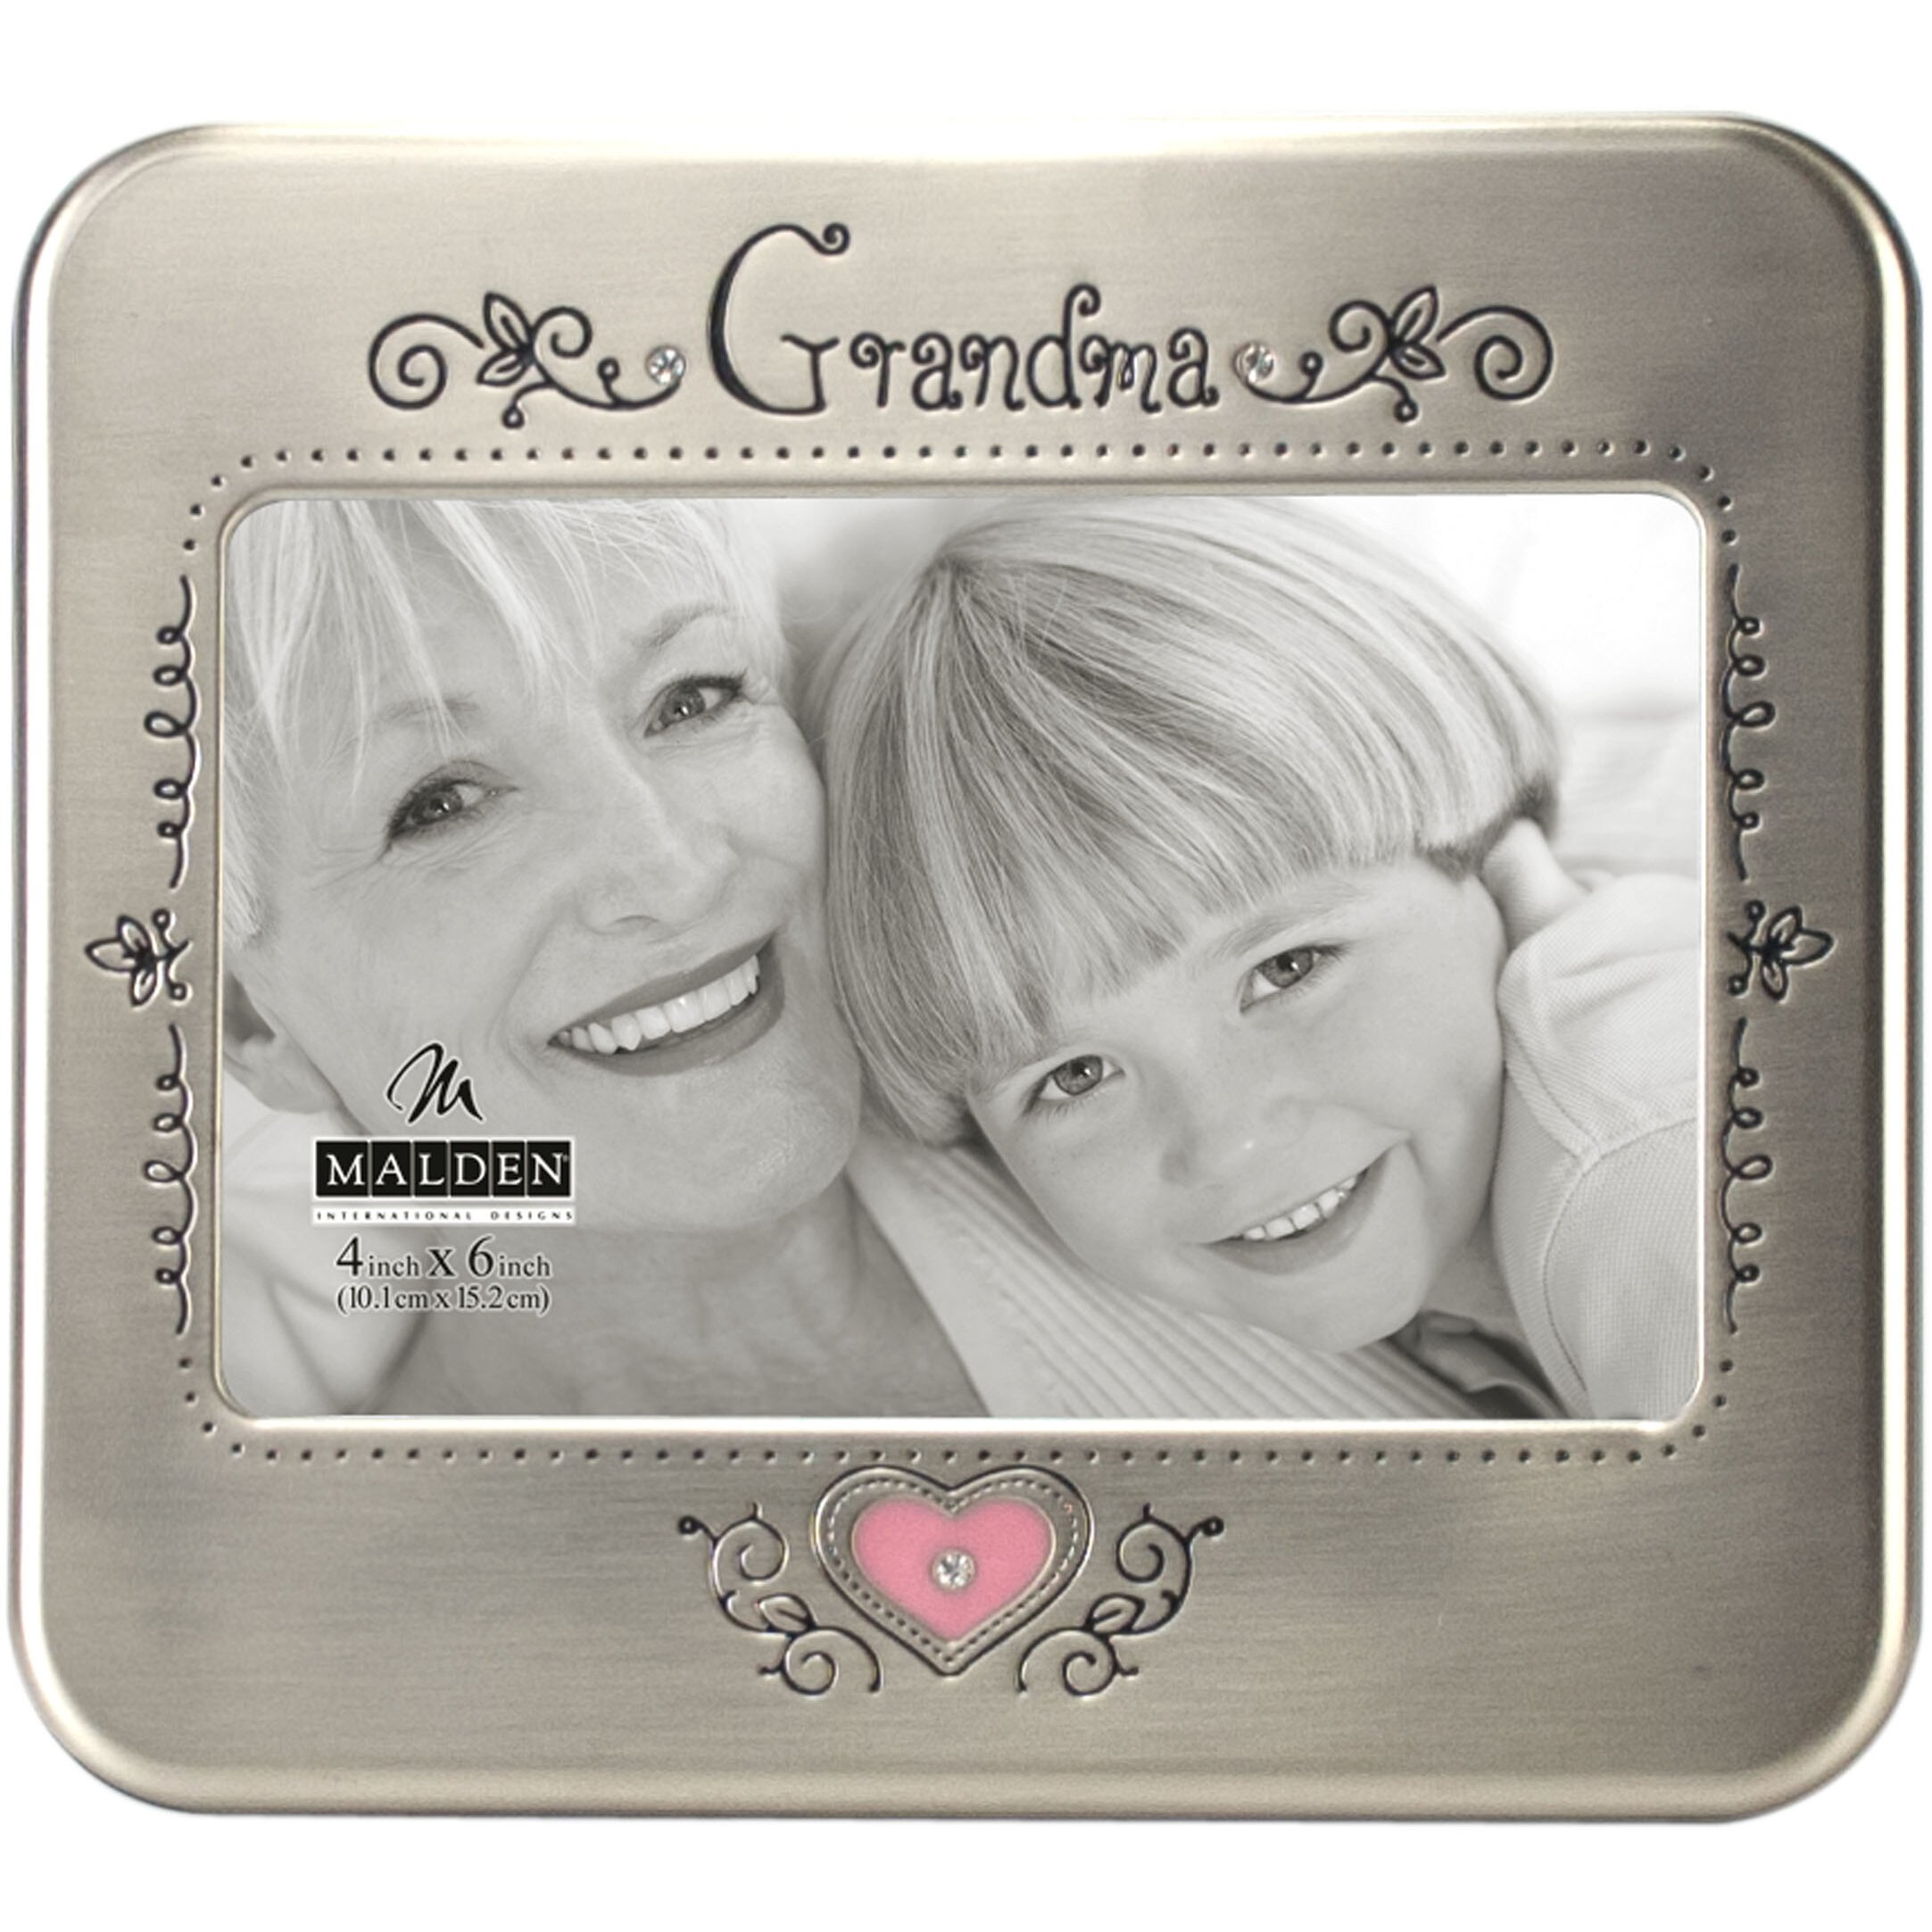 Malden Grandma Serendipity Picture Frame Amp Reviews Wayfair